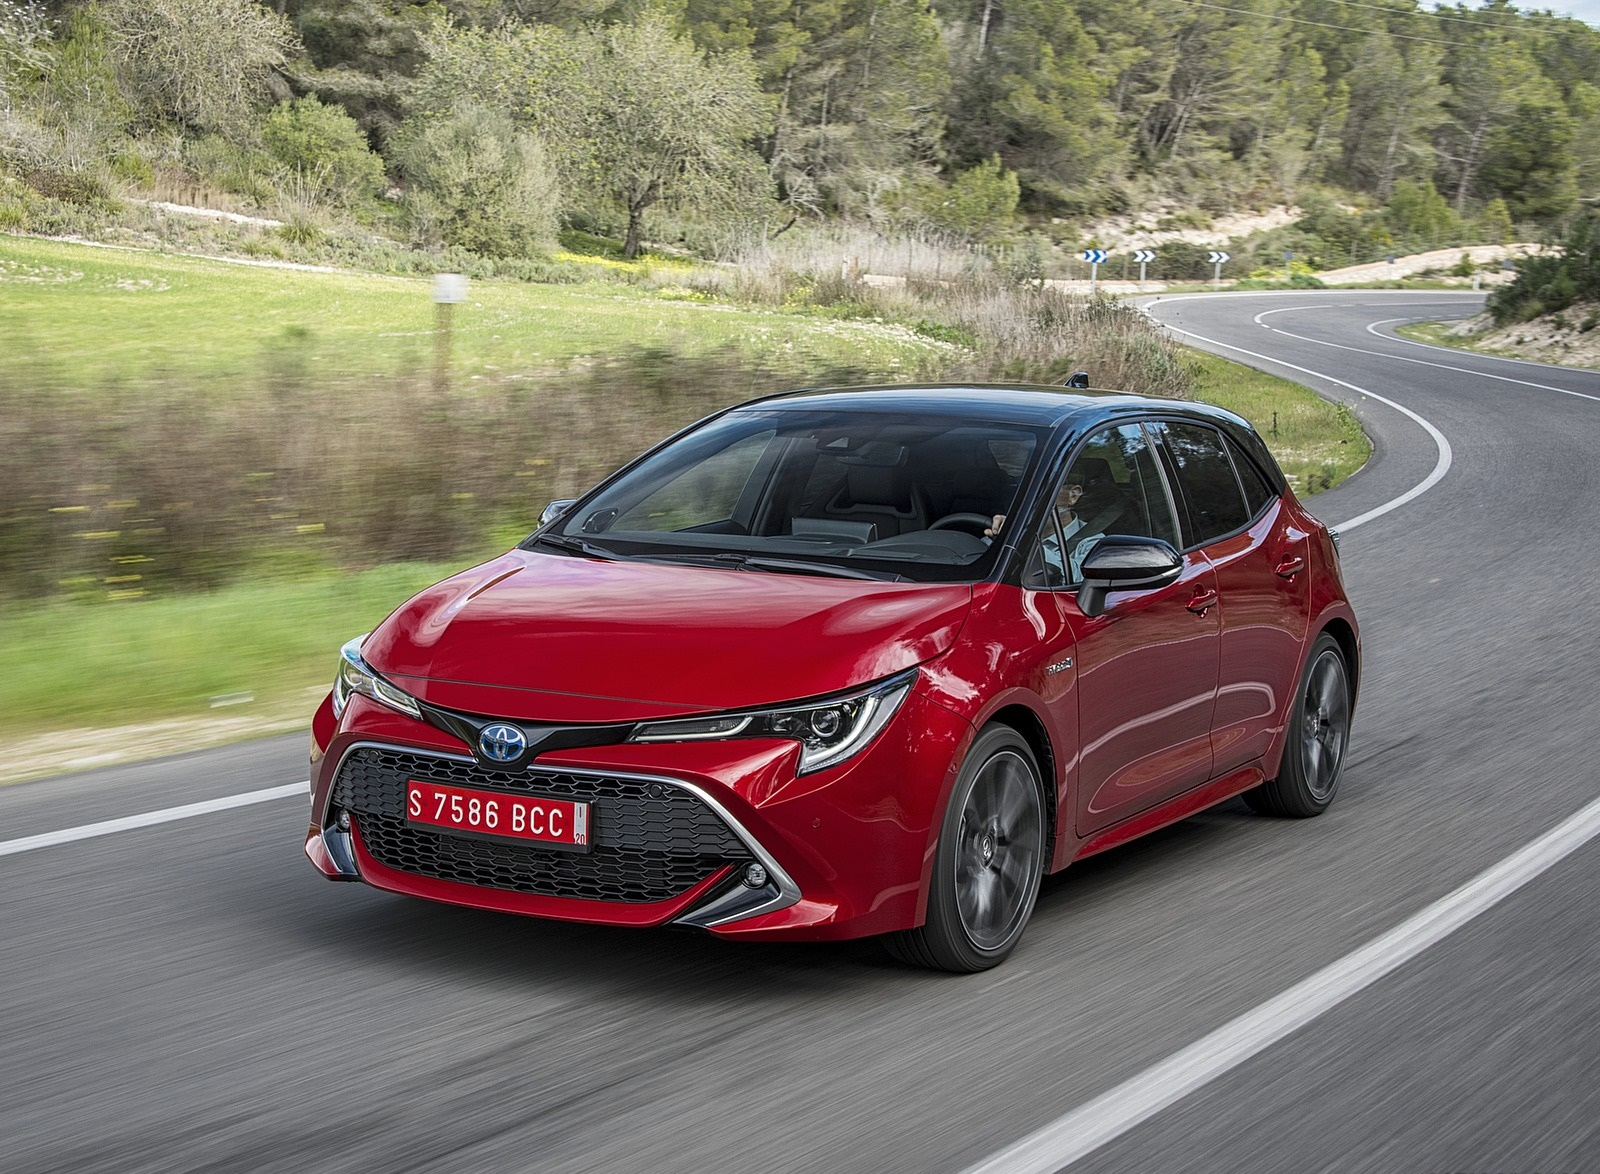 2019 Toyota Corolla Hatchback Hybrid 2.0L Red bitone (EU-Spec) Front Three-Quarter Wallpapers (10)